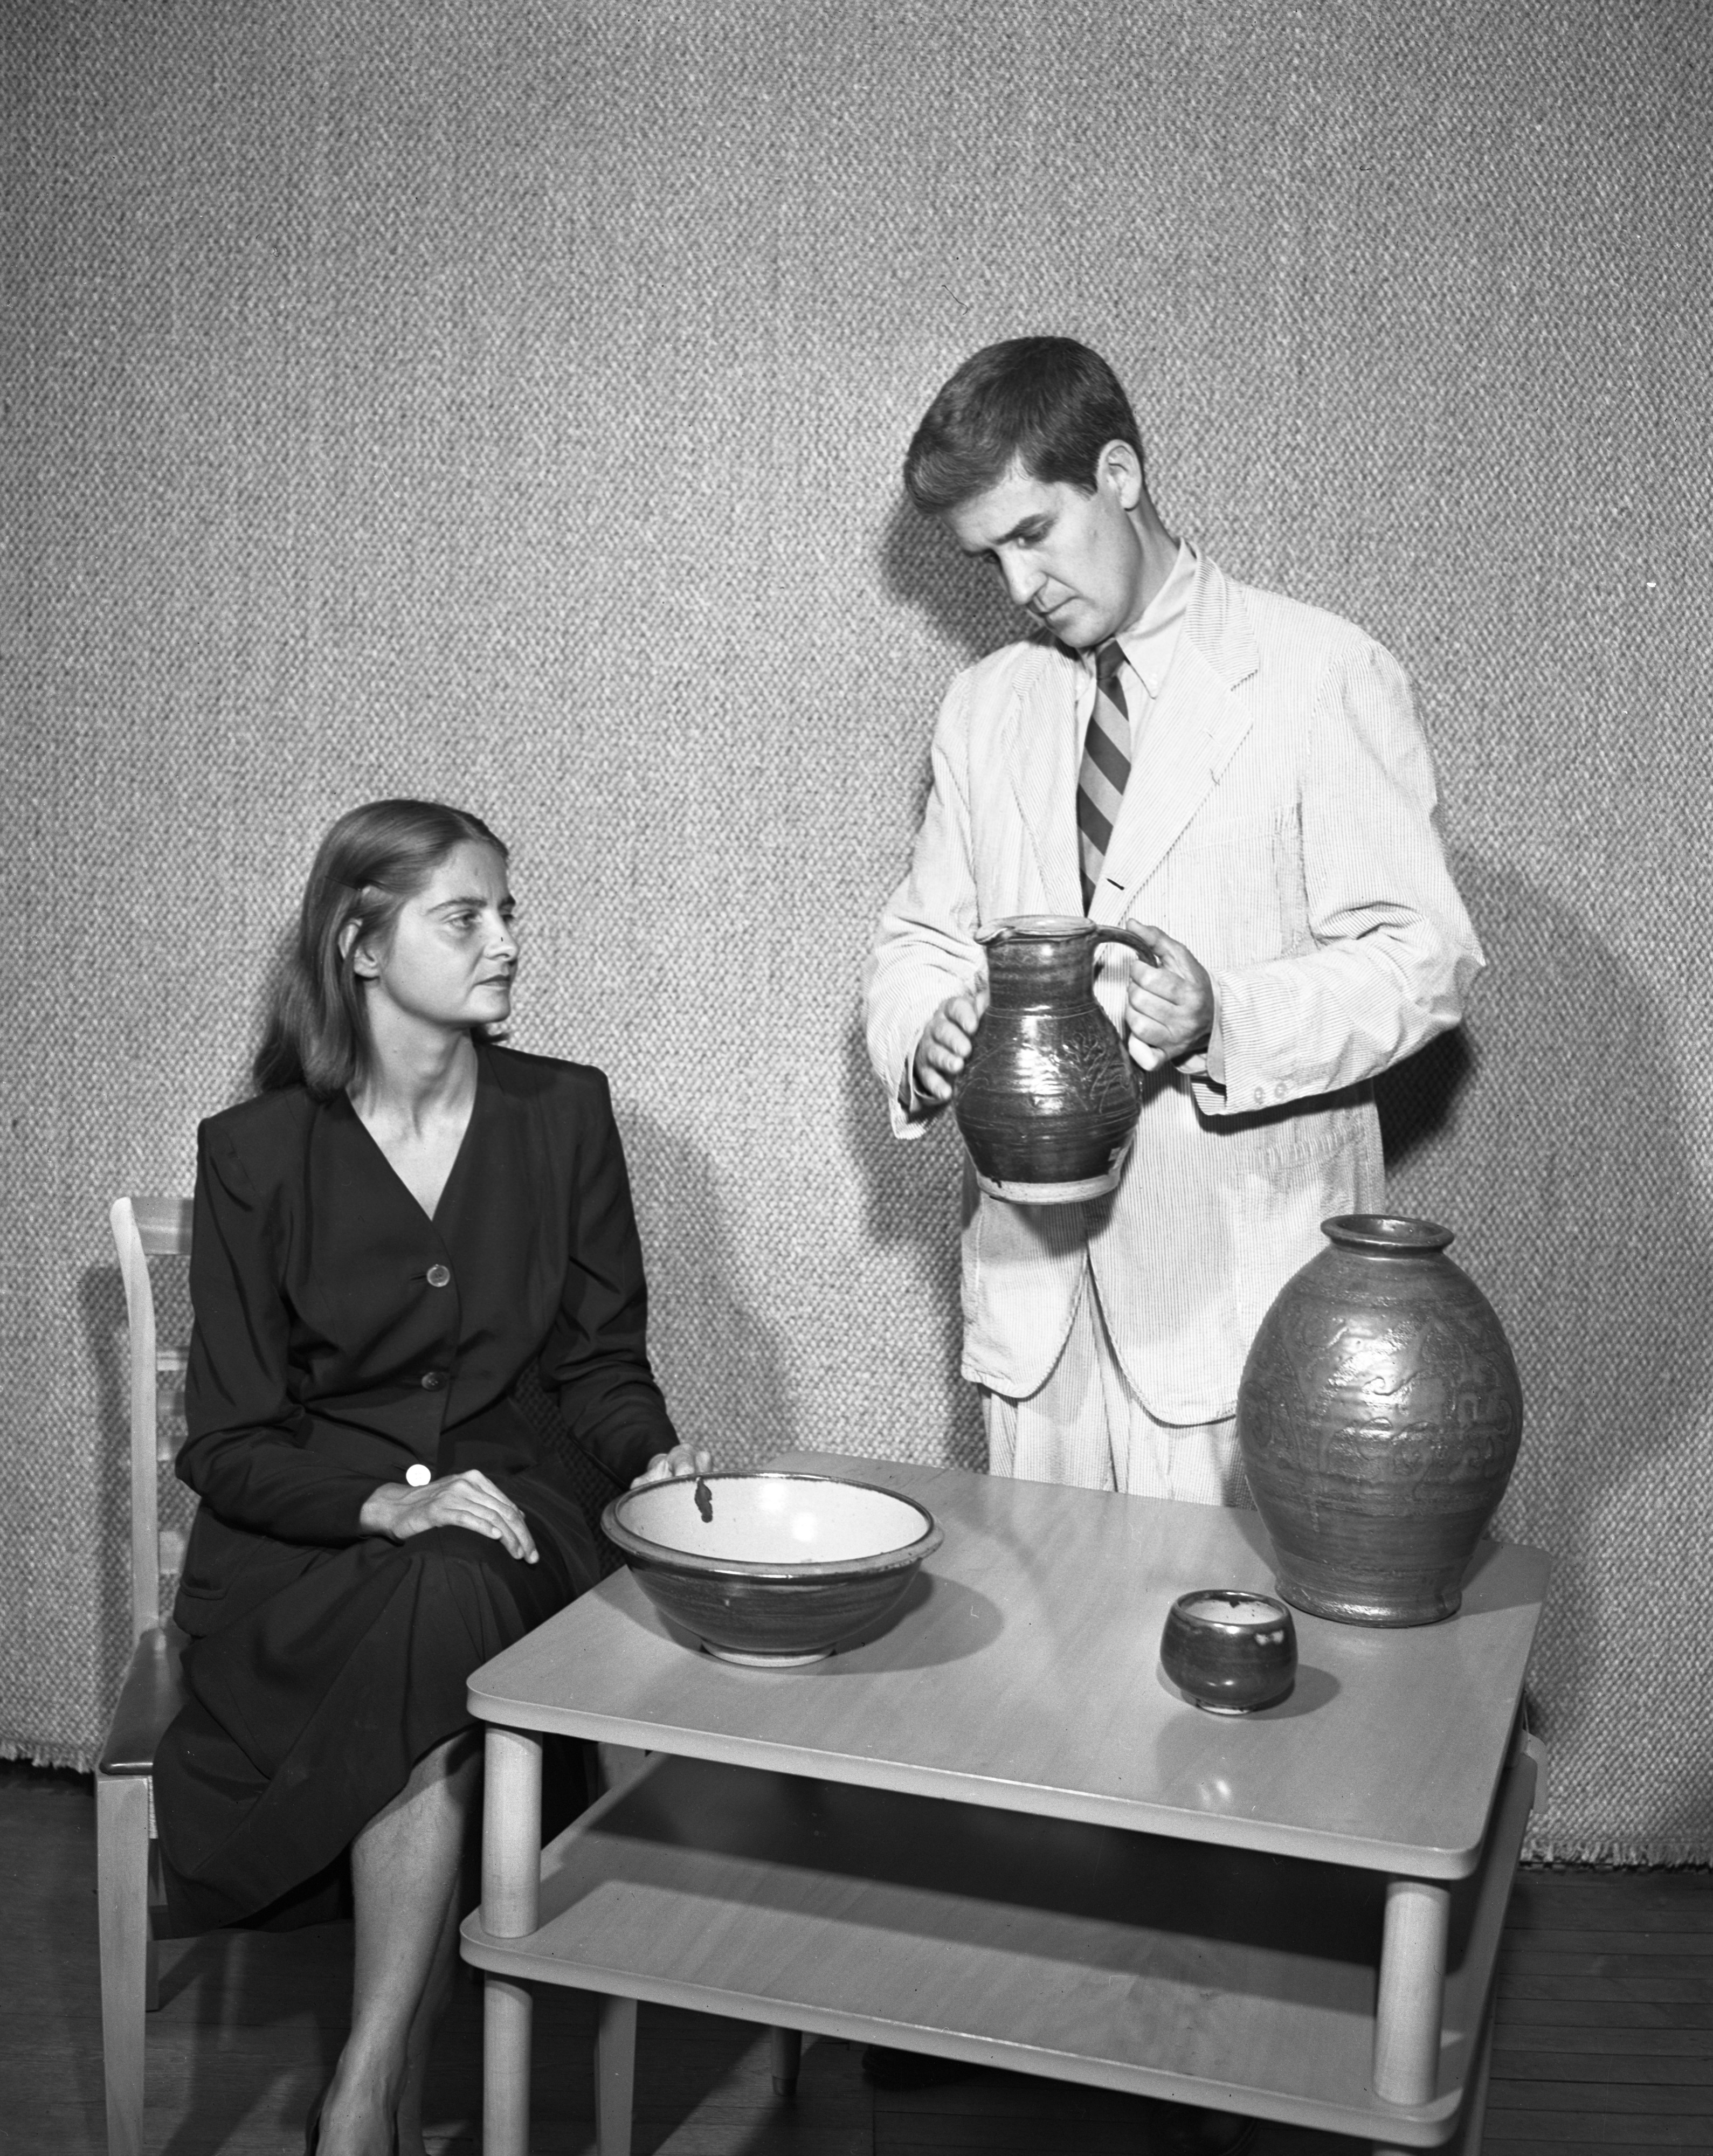 Display of Bernard Leach's Pottery, July 1950 image